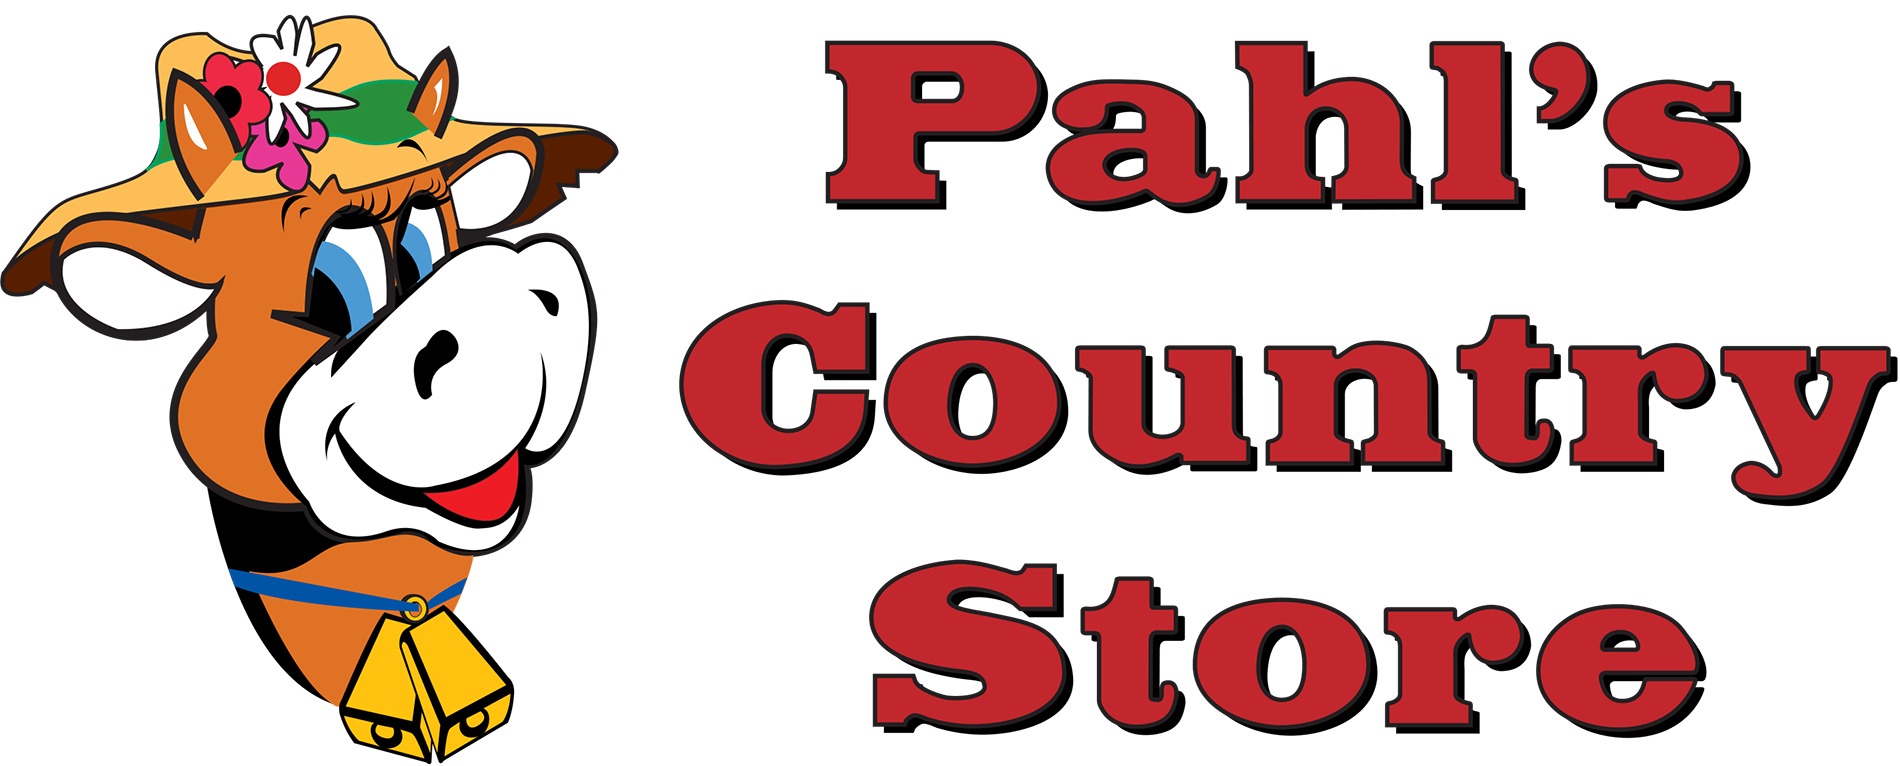 pahls-country-store